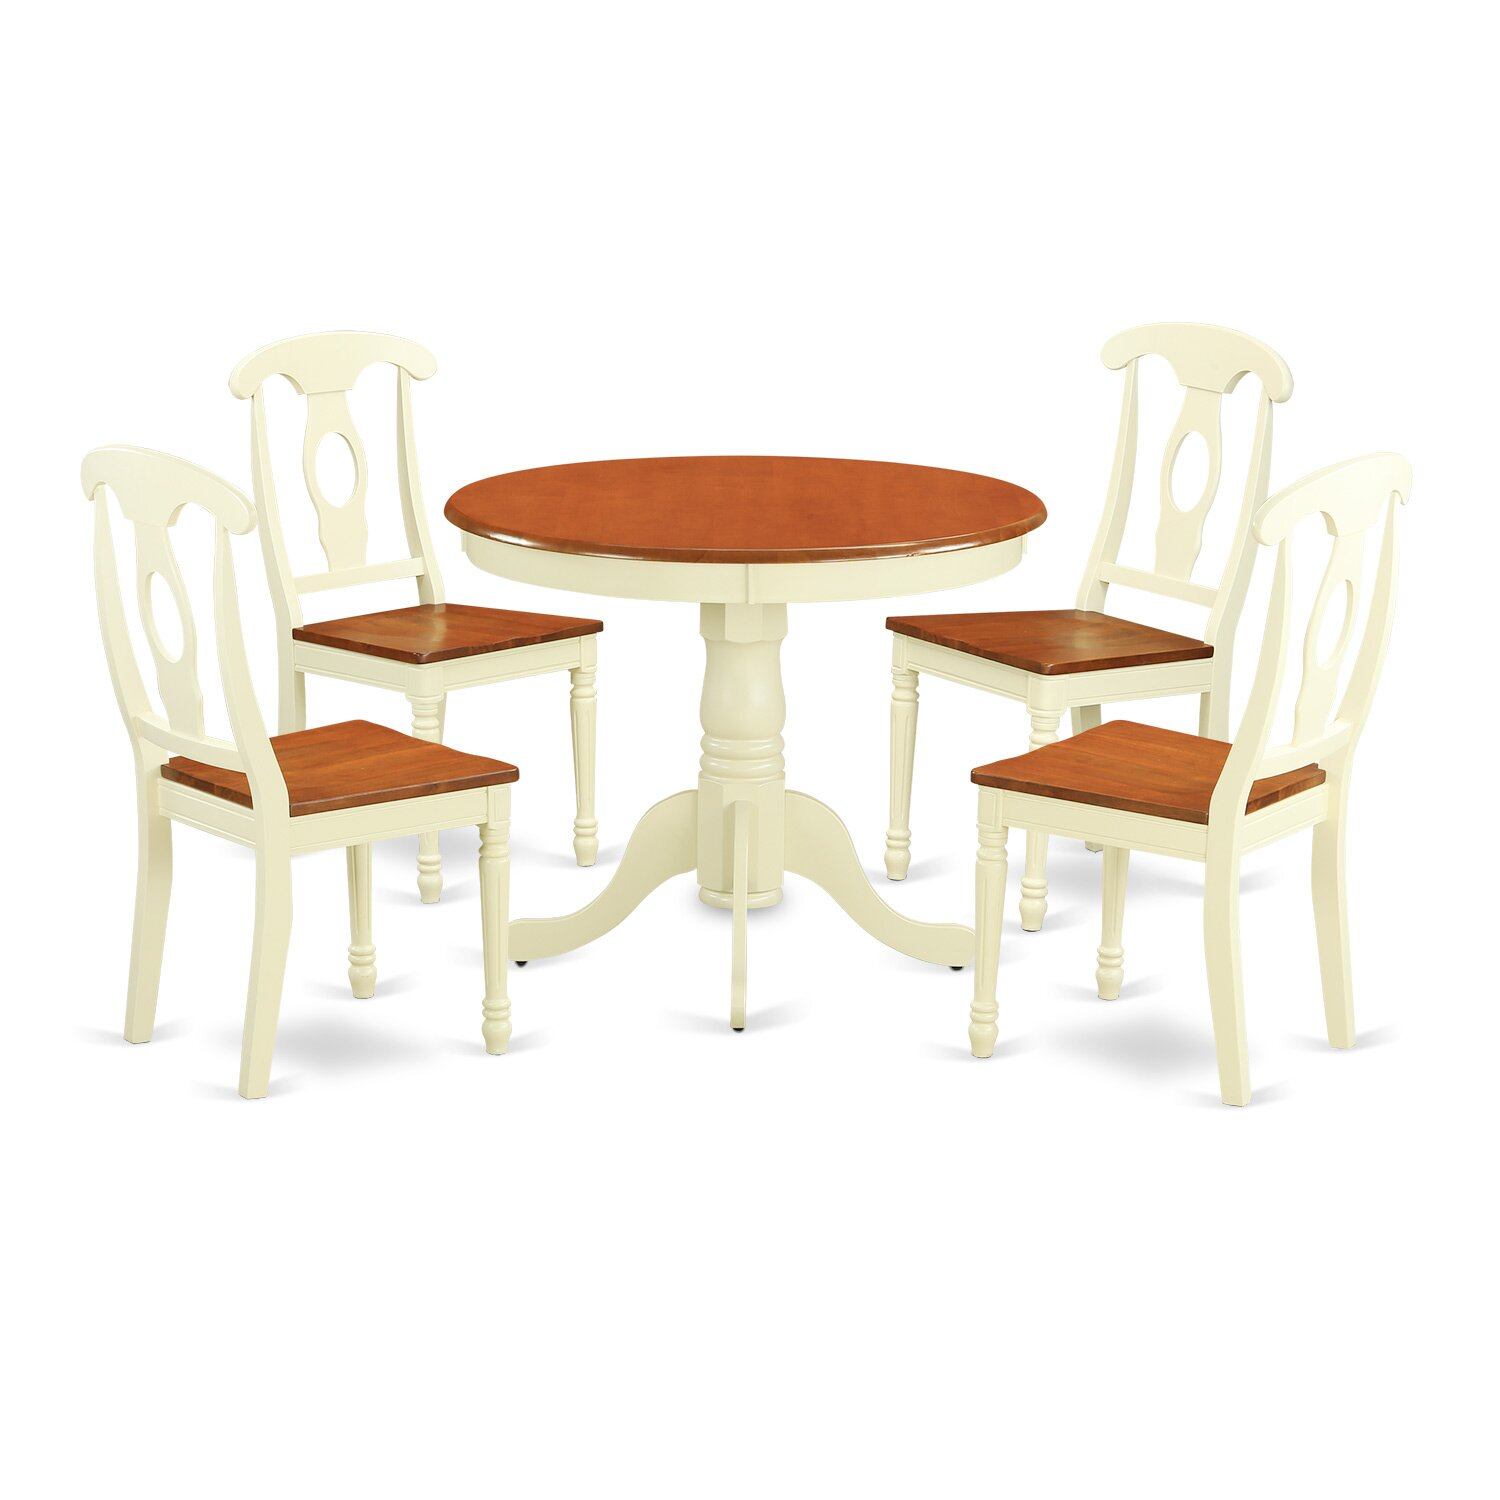 East west 5 piece dining set wayfair for Small kitchen table with 4 chairs